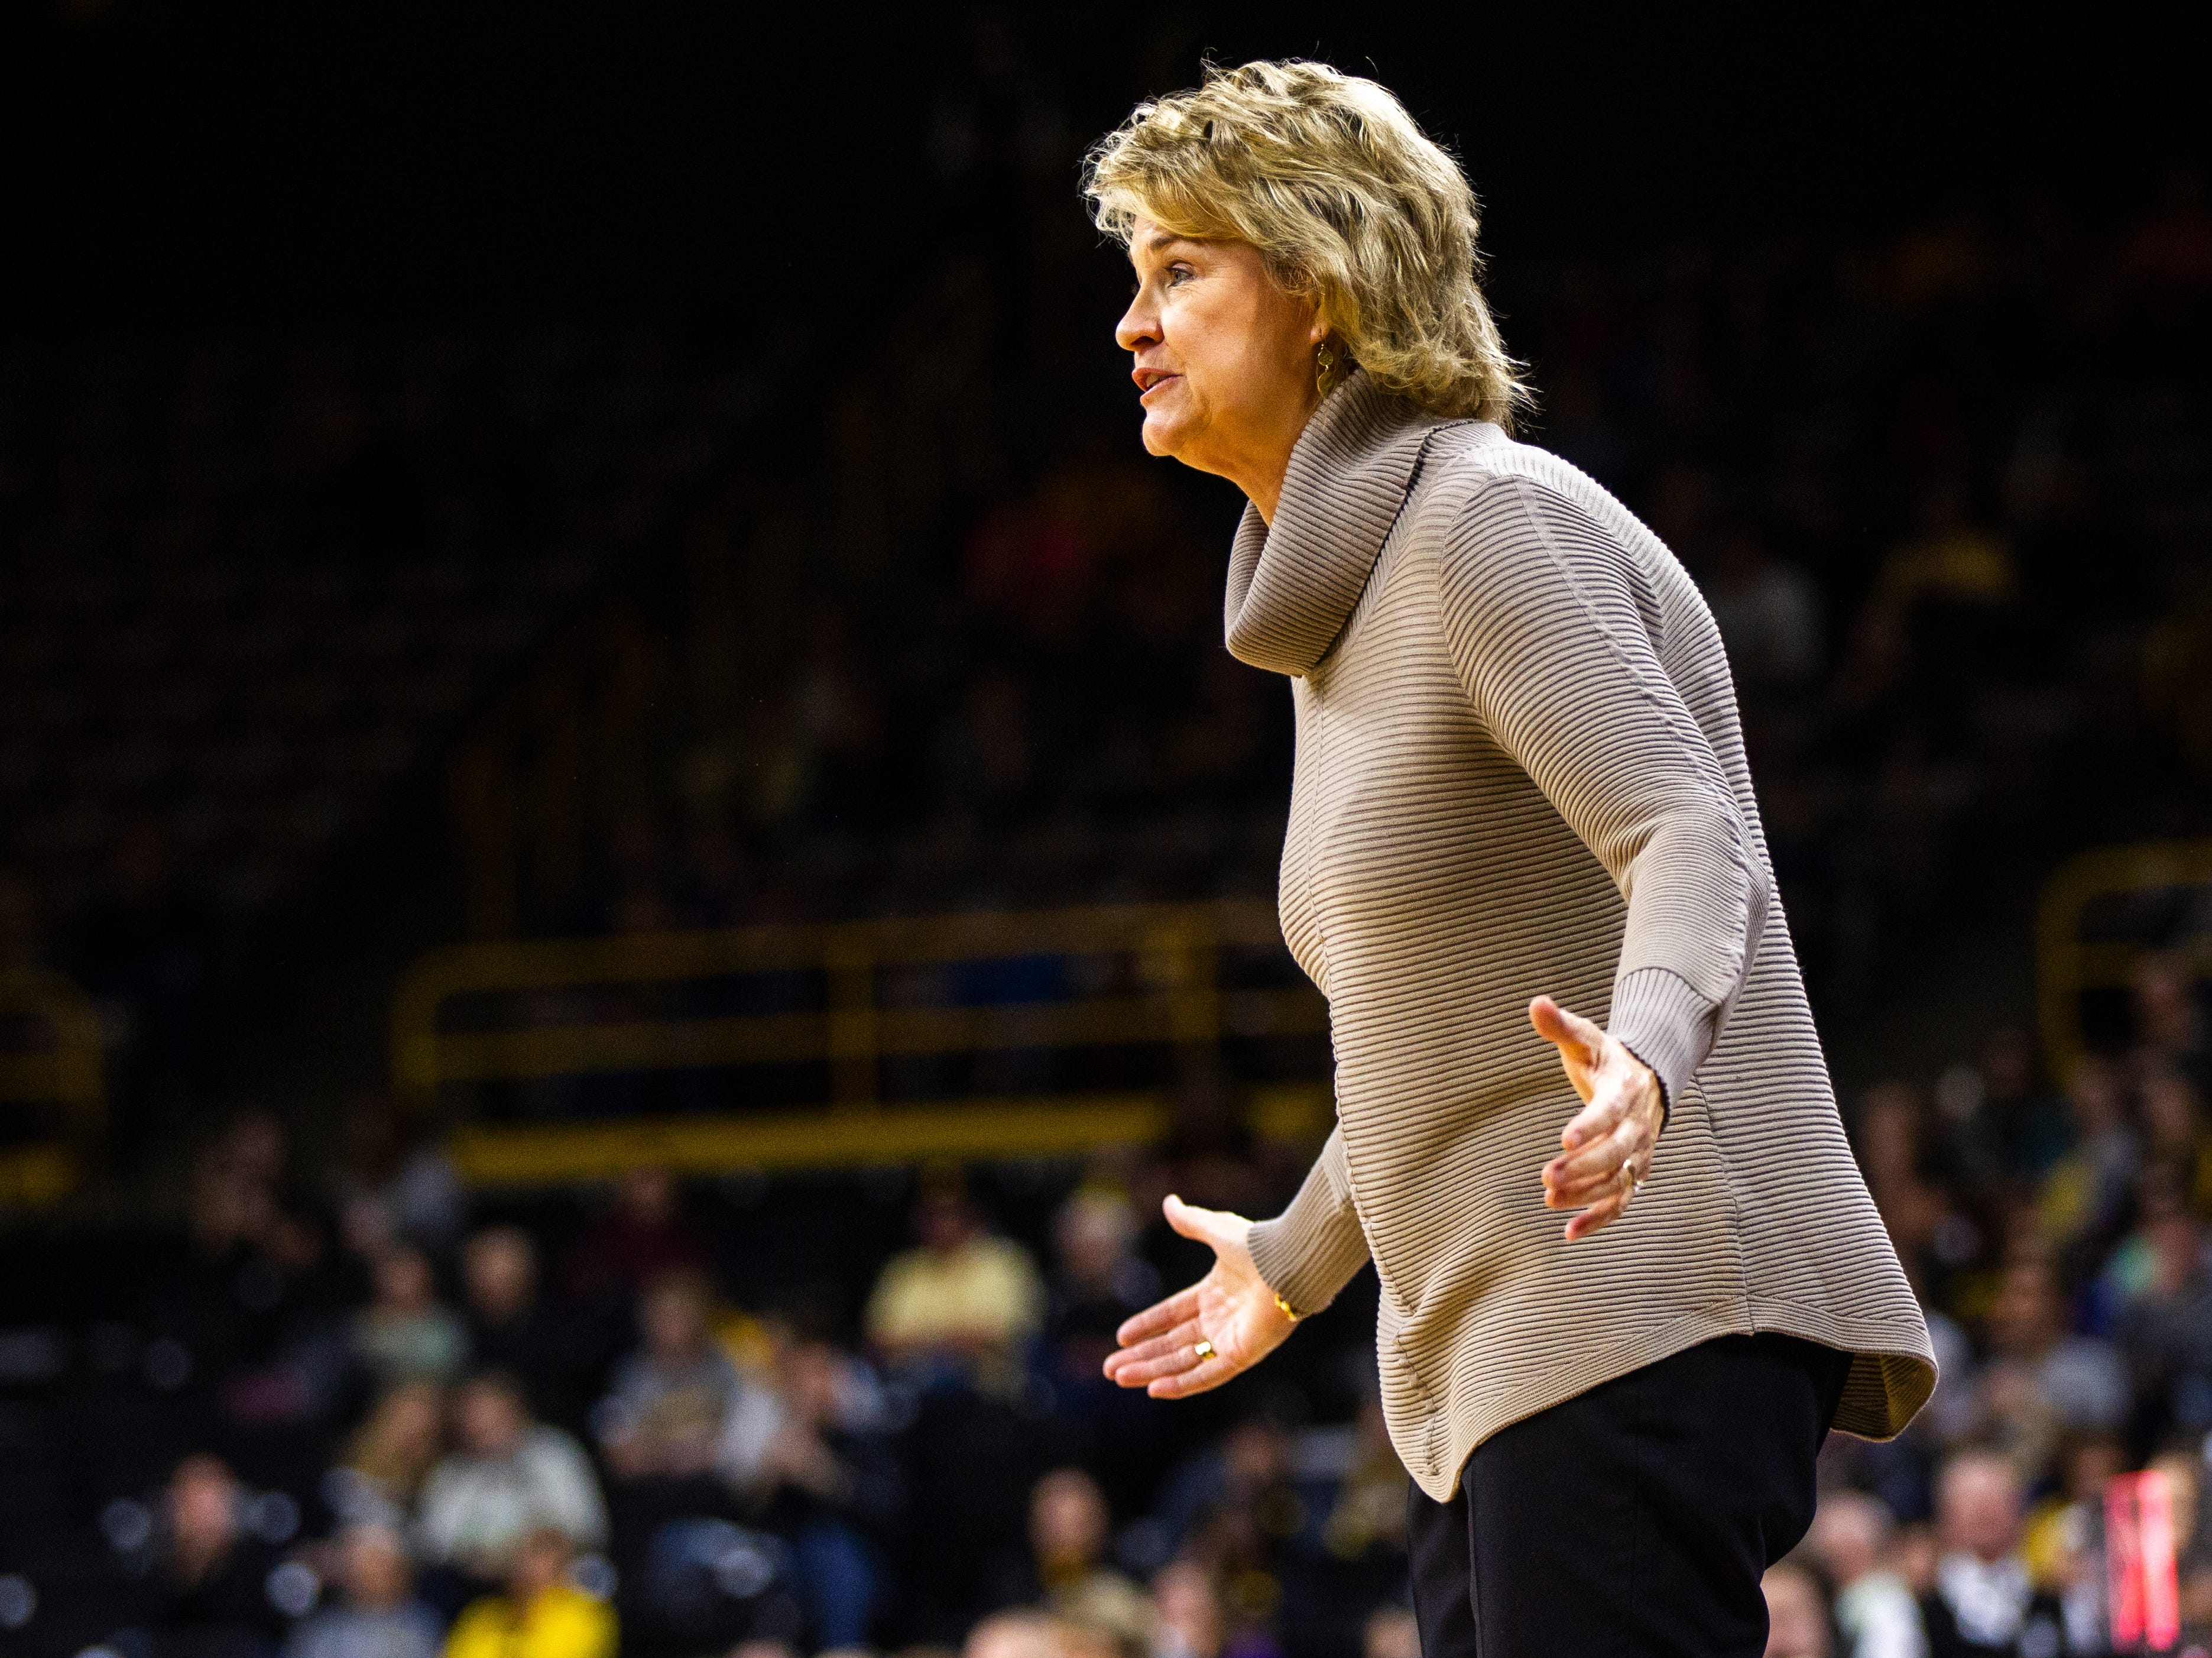 Iowa head coach Lisa Bluder reacts to a call during a NCAA women's basketball game on Sunday, Dec. 16, 2018, at Carver-Hawkeye Arena in Iowa City.